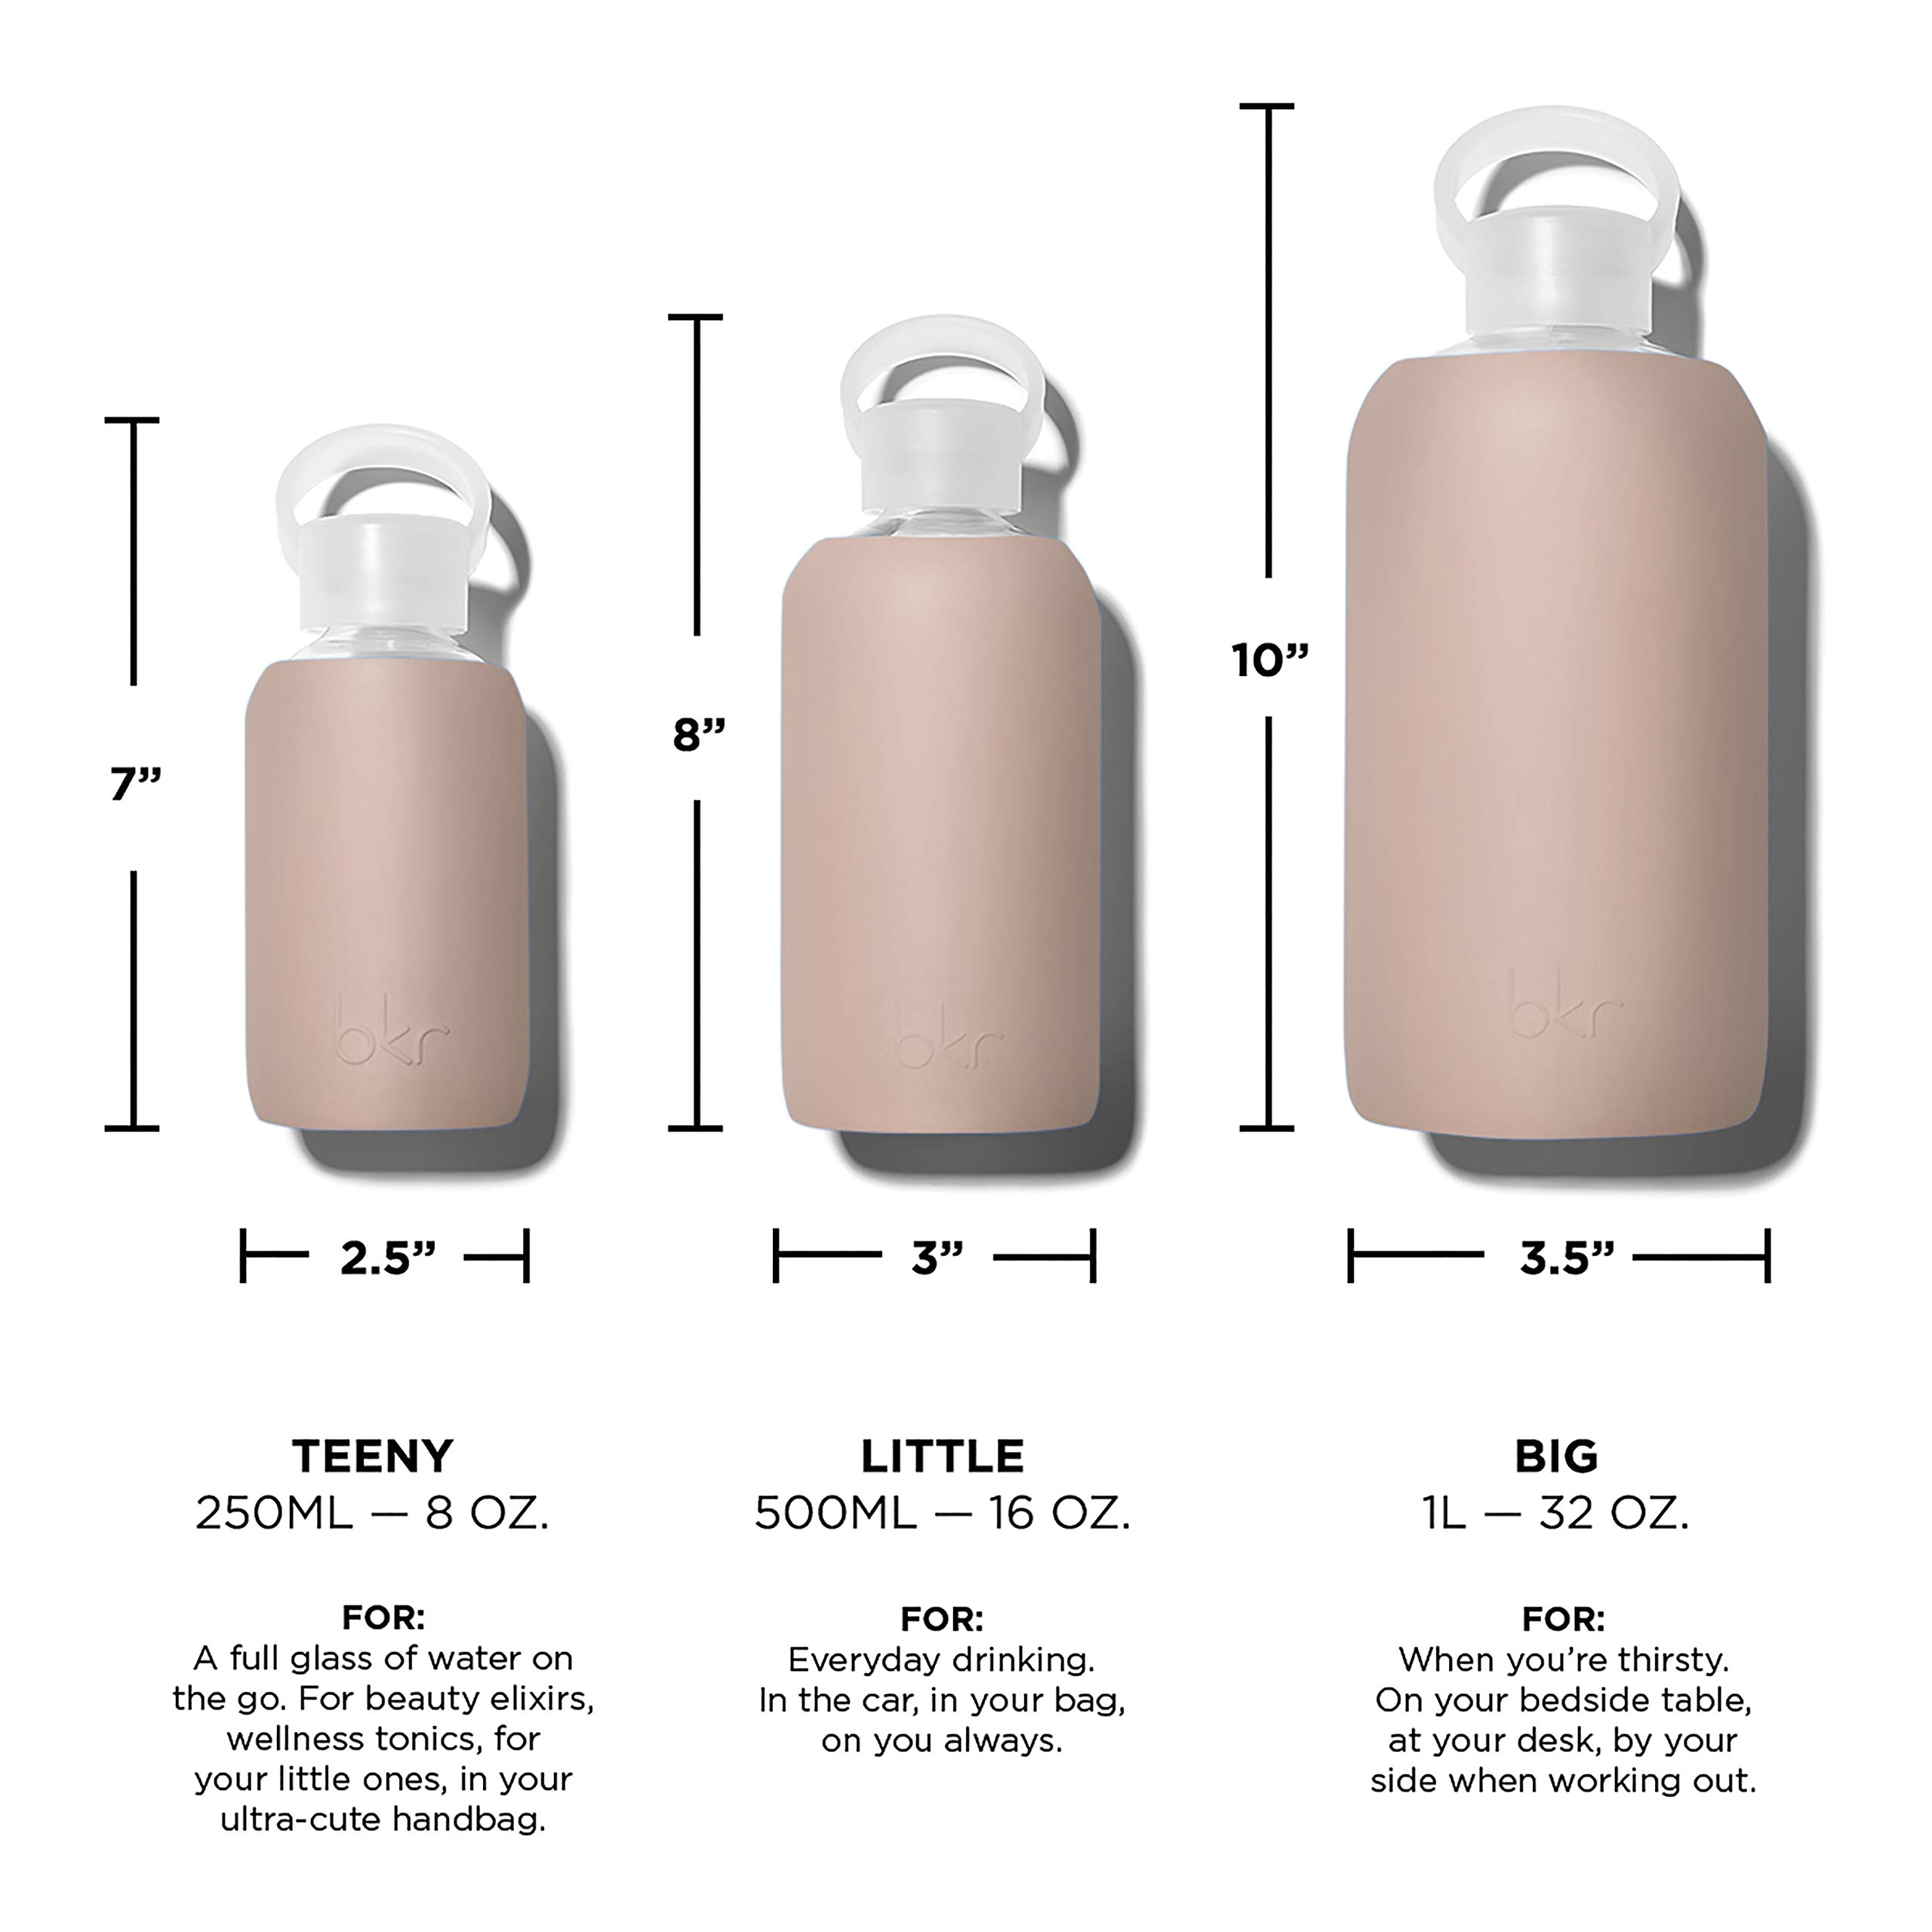 bkr Naked Glass Water Bottle with Smooth Silicone Sleeve for Travel, Narrow Mouth, BPA-Free & Dishwasher Safe, Opaque Light Chocolate Milk Nude, 8 oz / 250 mL by bkr (Image #6)